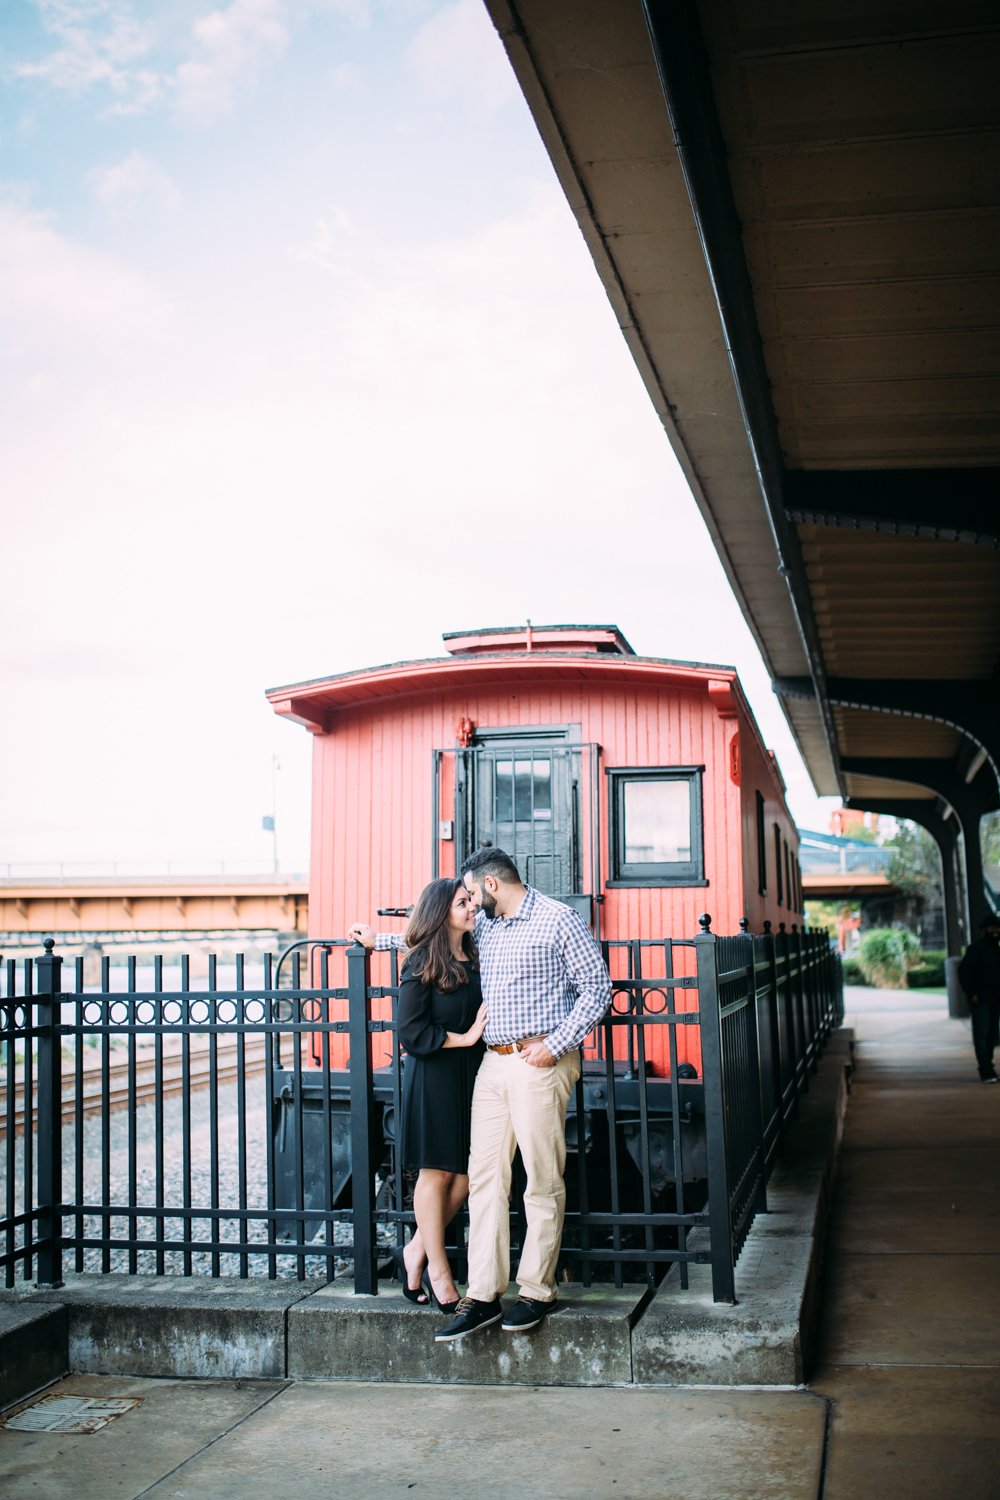 Ashley-reed-photography-pittsburgh-engagement-engagementphotography-engagementphotographer-stationsquare-statio-square-pittsburghengagementphotography-13.jpg